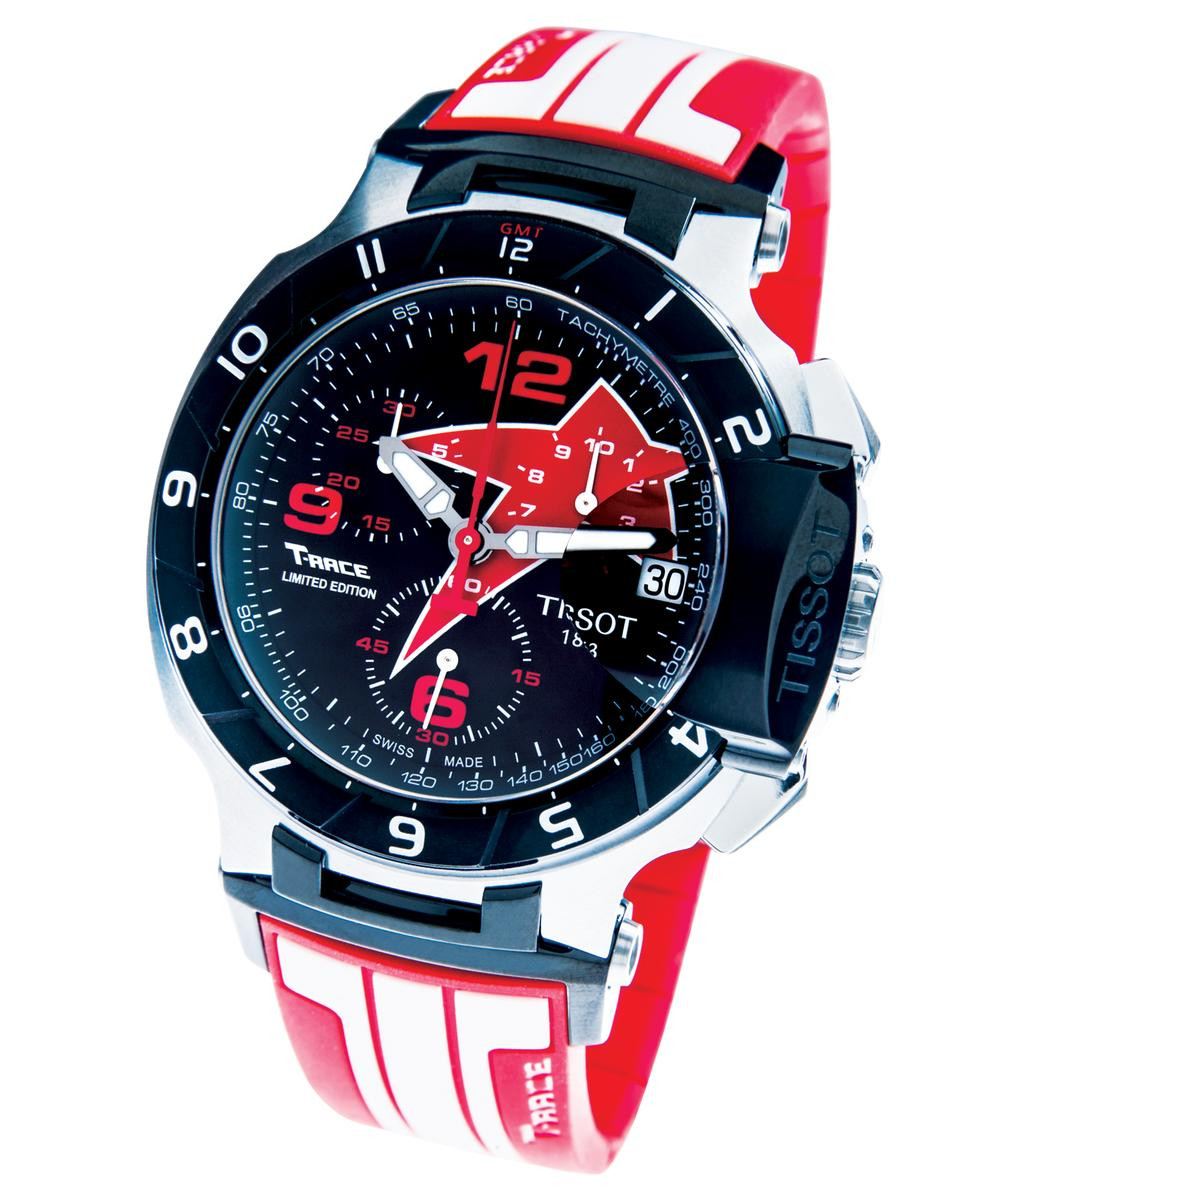 New Tissot Limited Edition Nicky Hayden T-Race